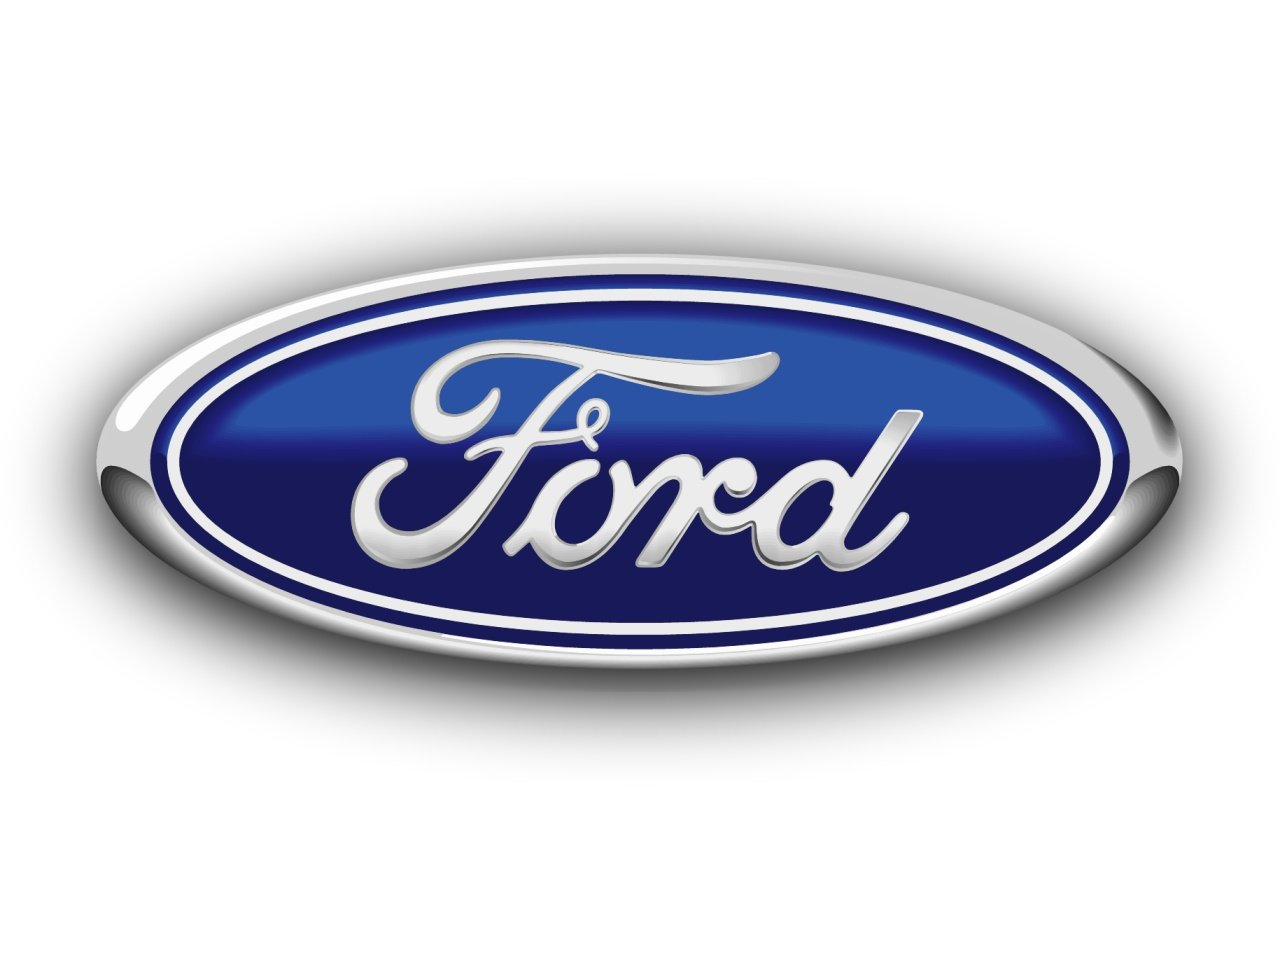 Ford's sales with China partners increase 22%